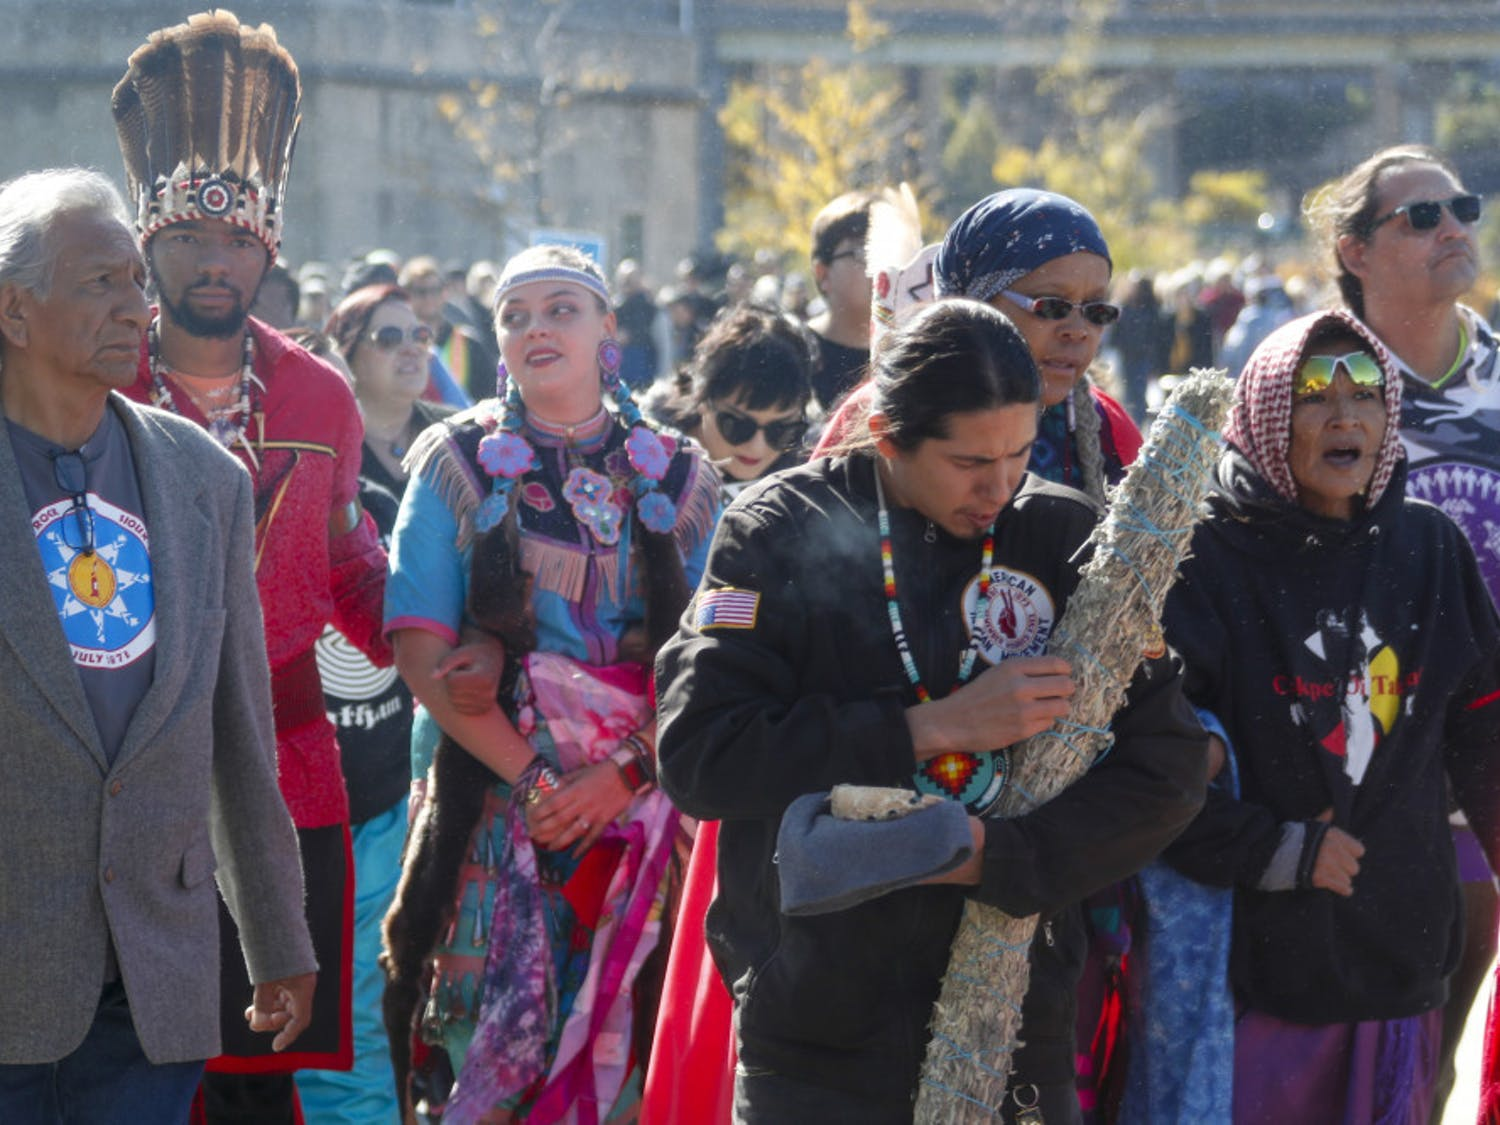 A group of indigenous peoples lead a march of protestors against fracking and shale gas through Point State Park before a ceremony to bless the three rivers, Wednesday, Oct. 23, 2019, in Pittsburgh. The group is protesting before President Donald Trump is to speak at at the Shale Insight Conference Wednesday afternoon. (AP Photo/Keith Srakocic)